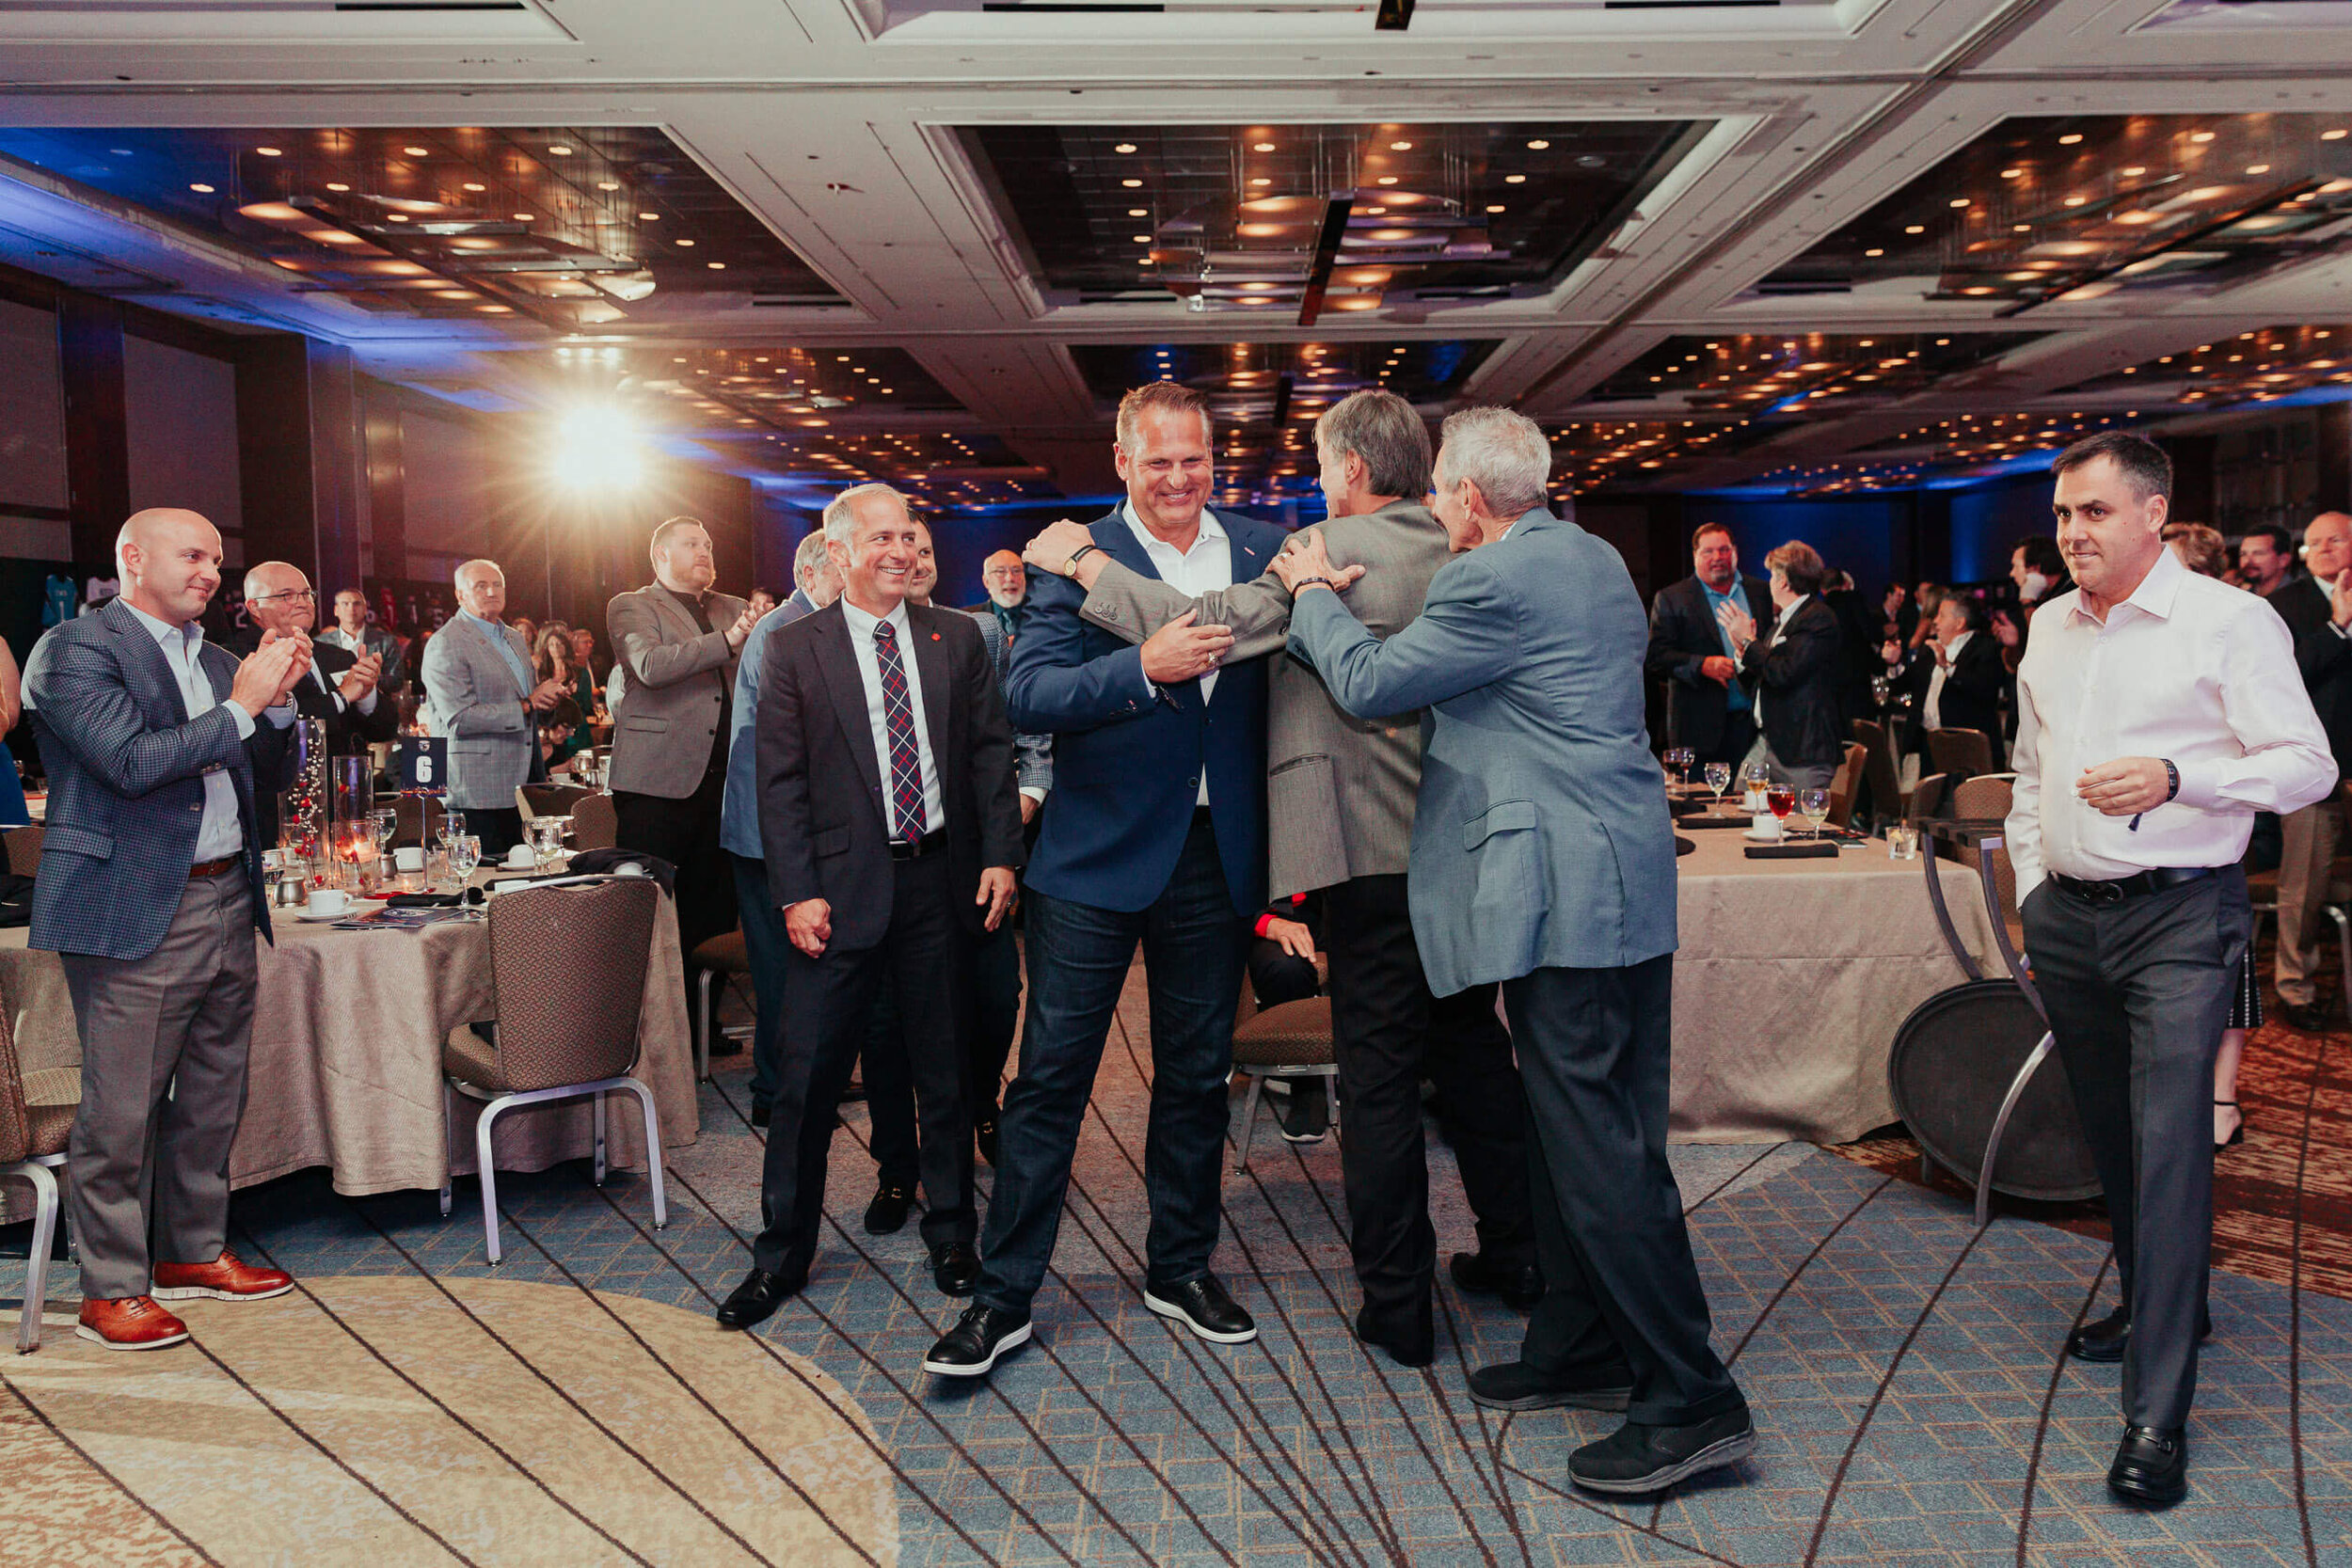 Chicago Event Photography_Gridiron Greats Assistance Fund Hall of Fame 2019_21.jpg